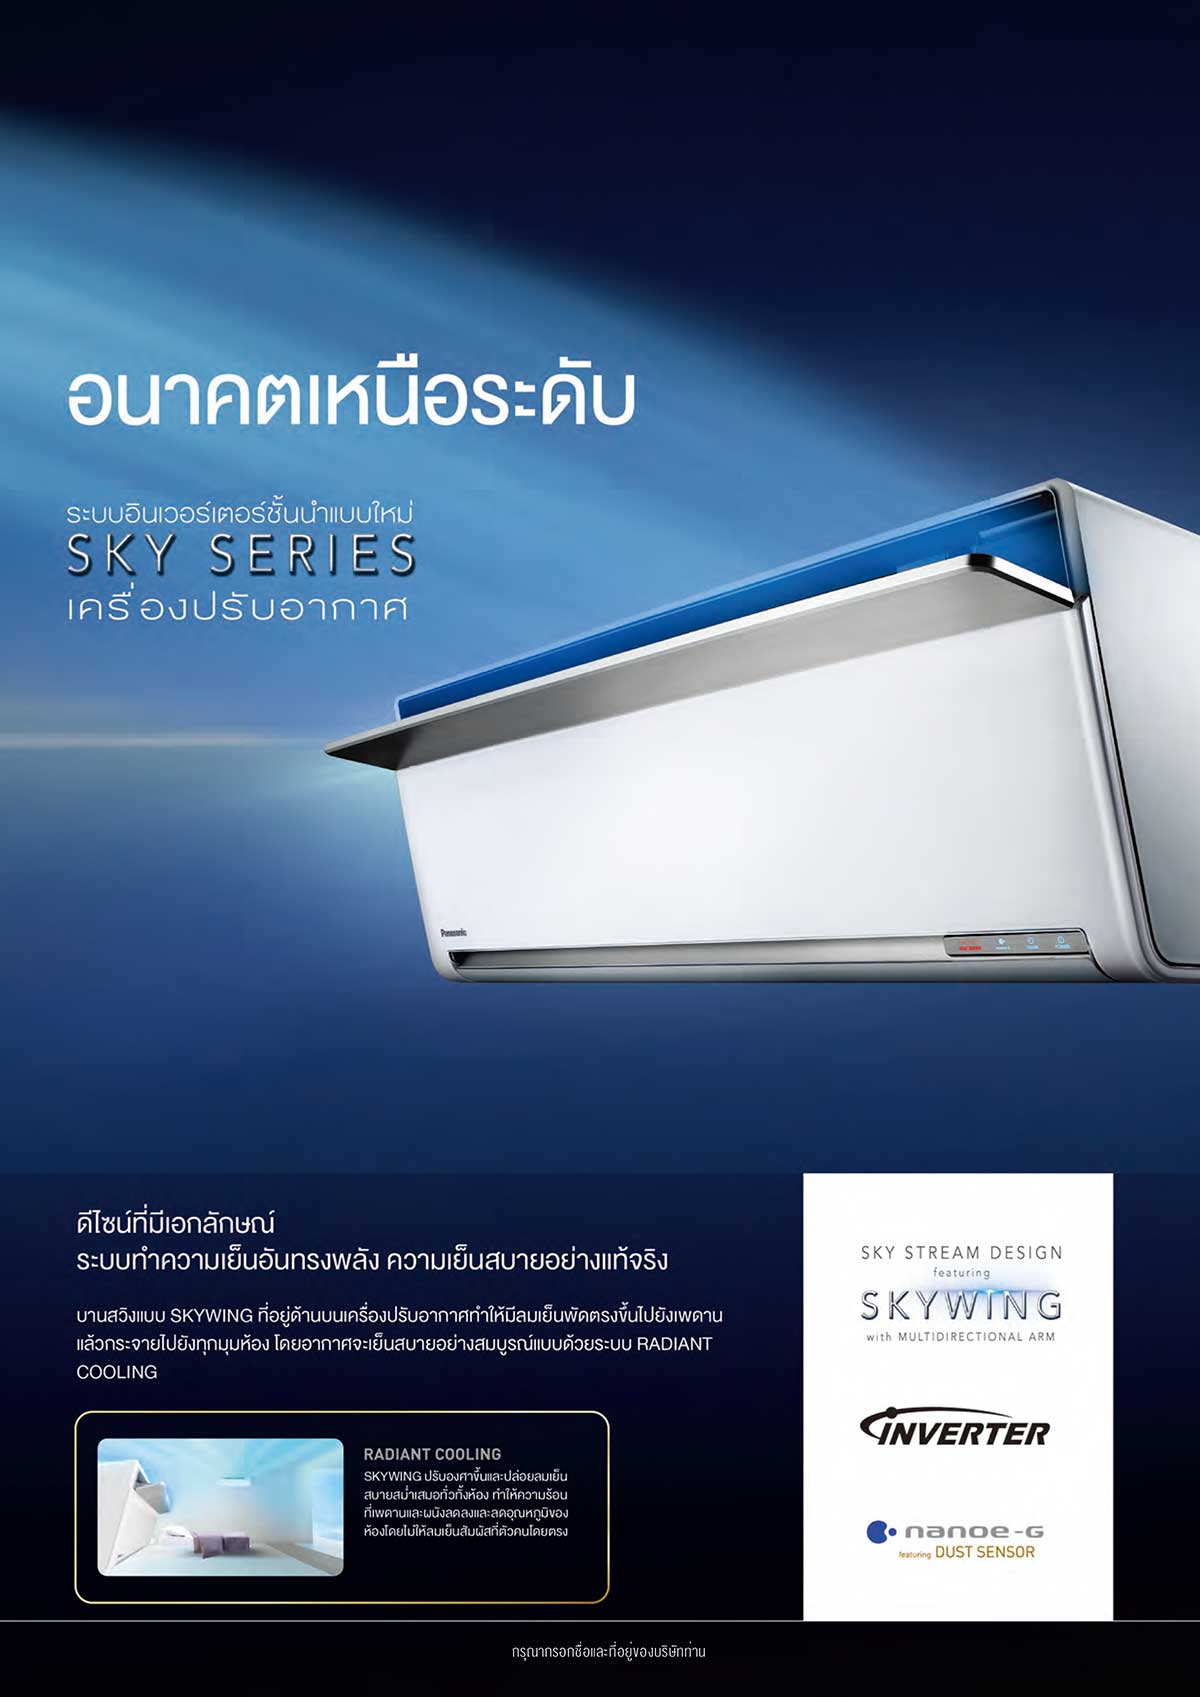 SKY SERIES AIR CONDITIONER